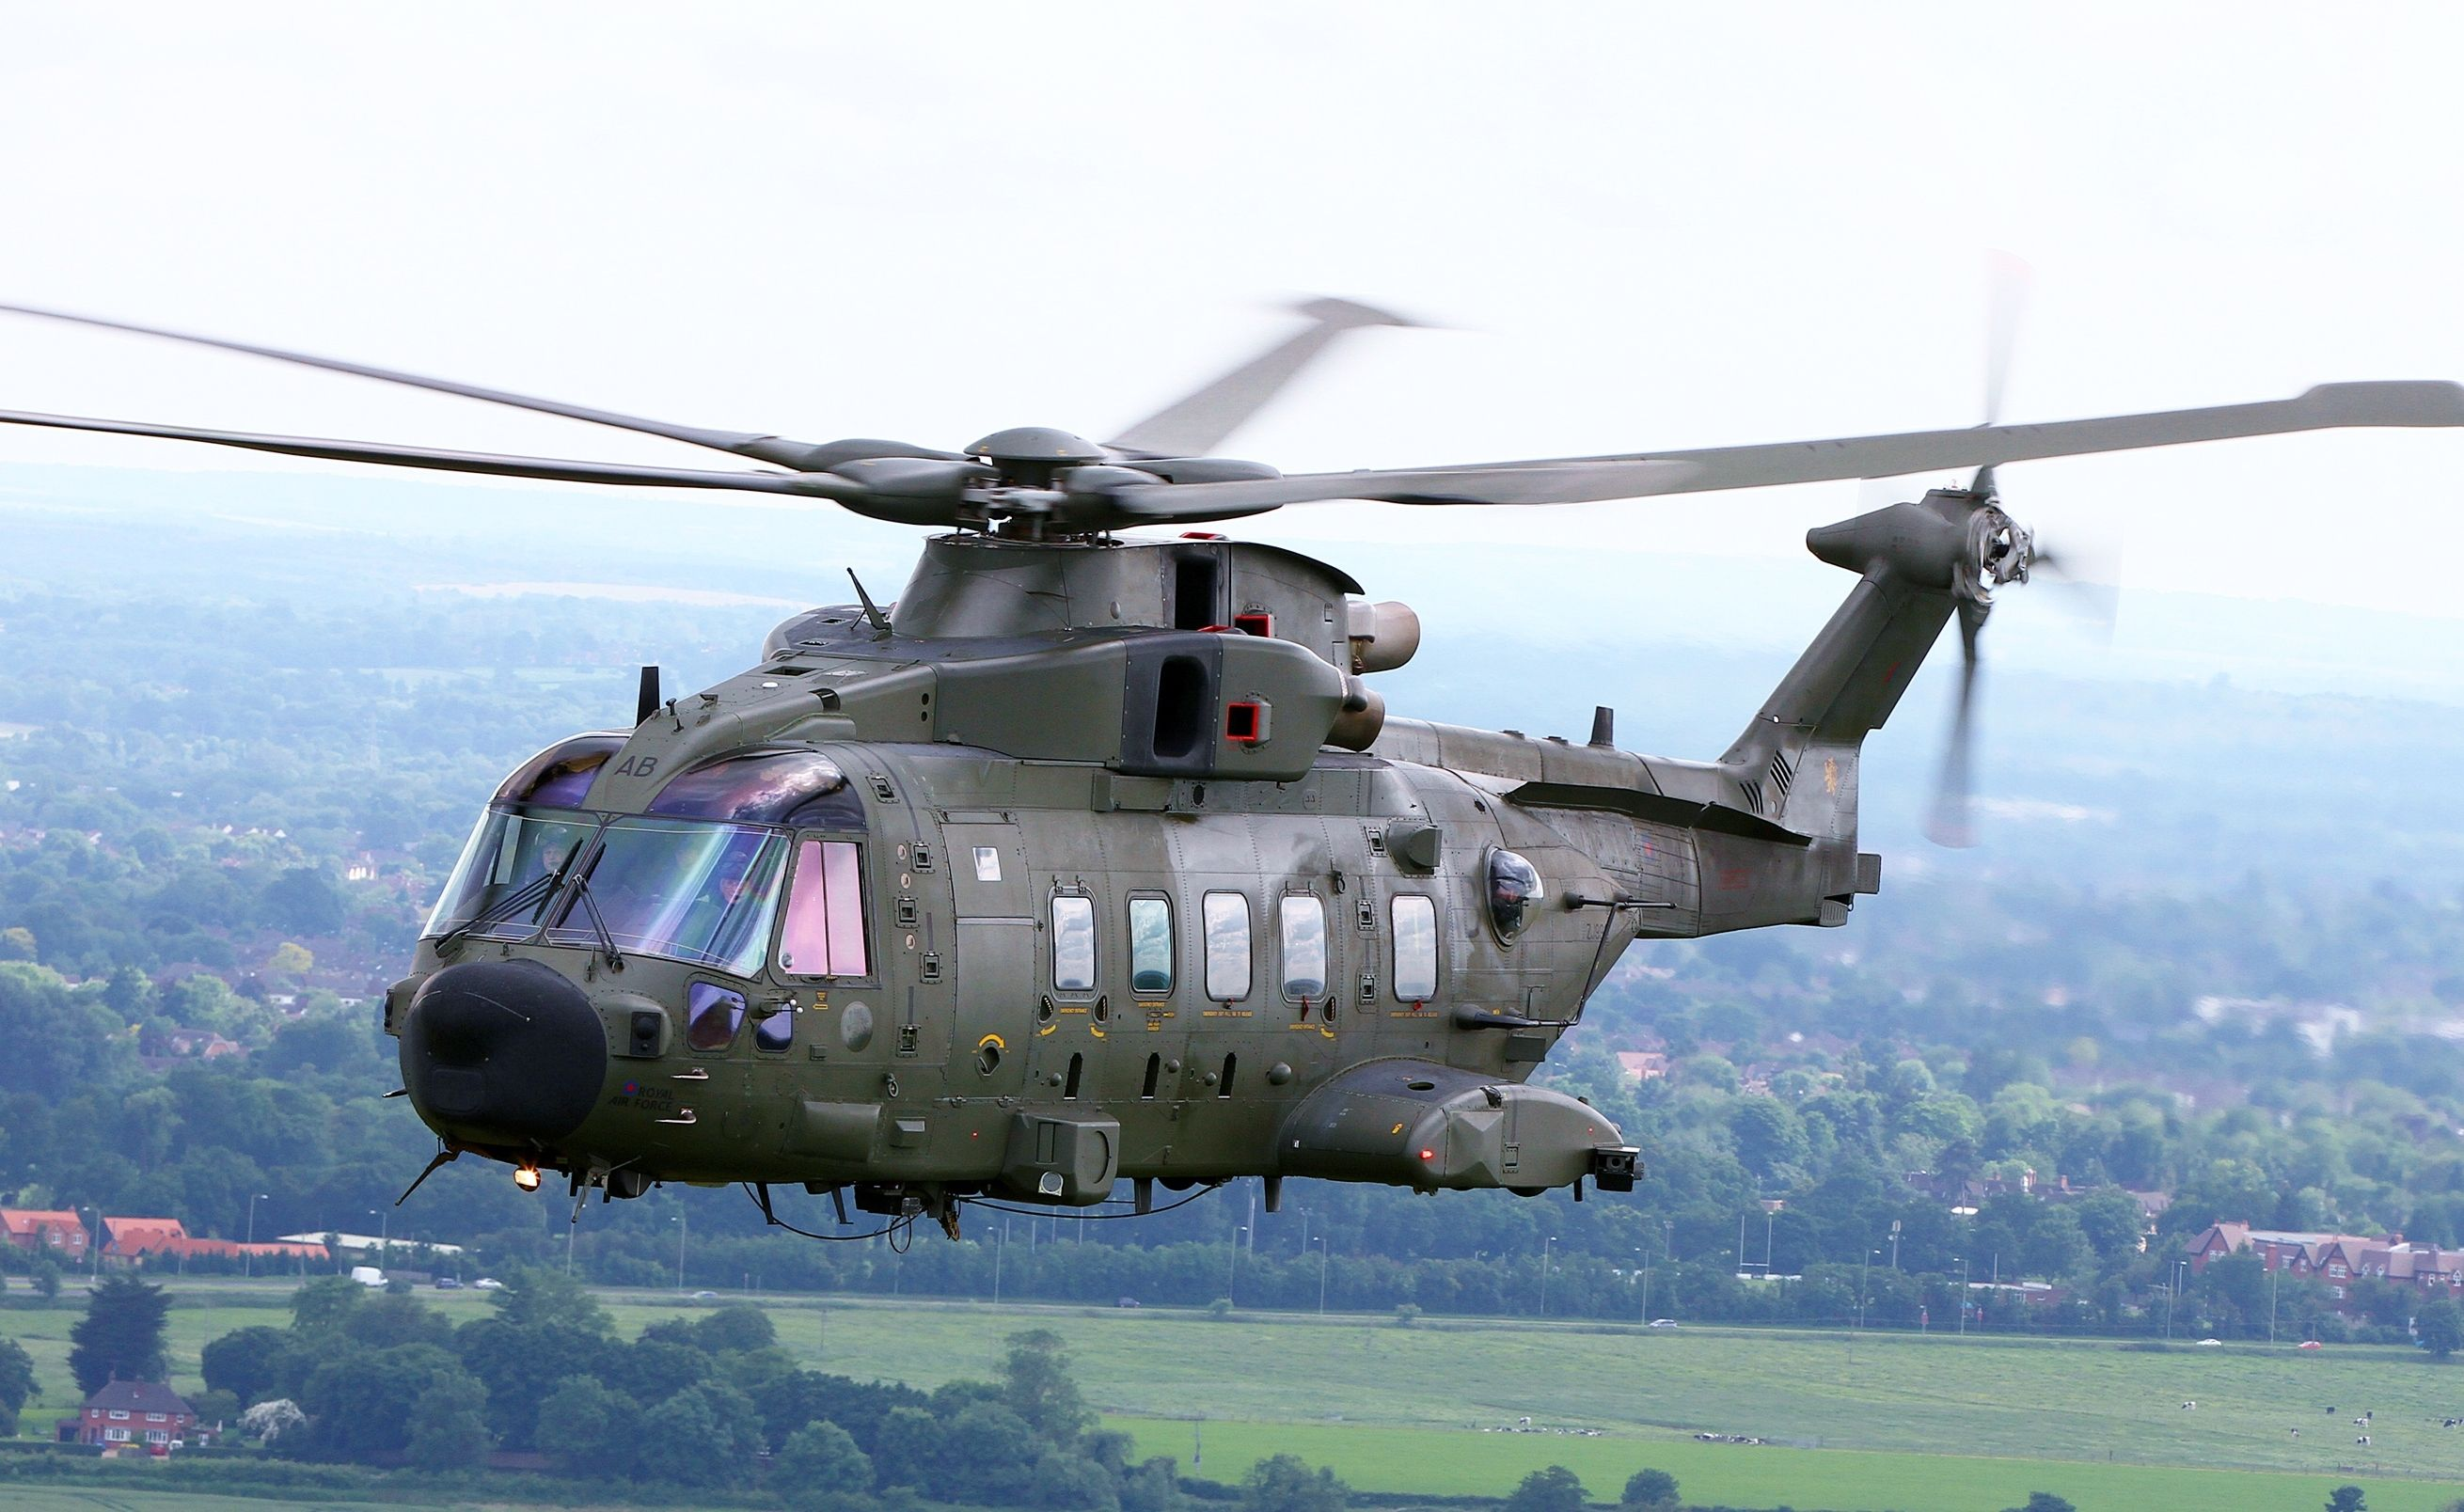 The AgustaWestland AW101 is a mediumlift helicopter used